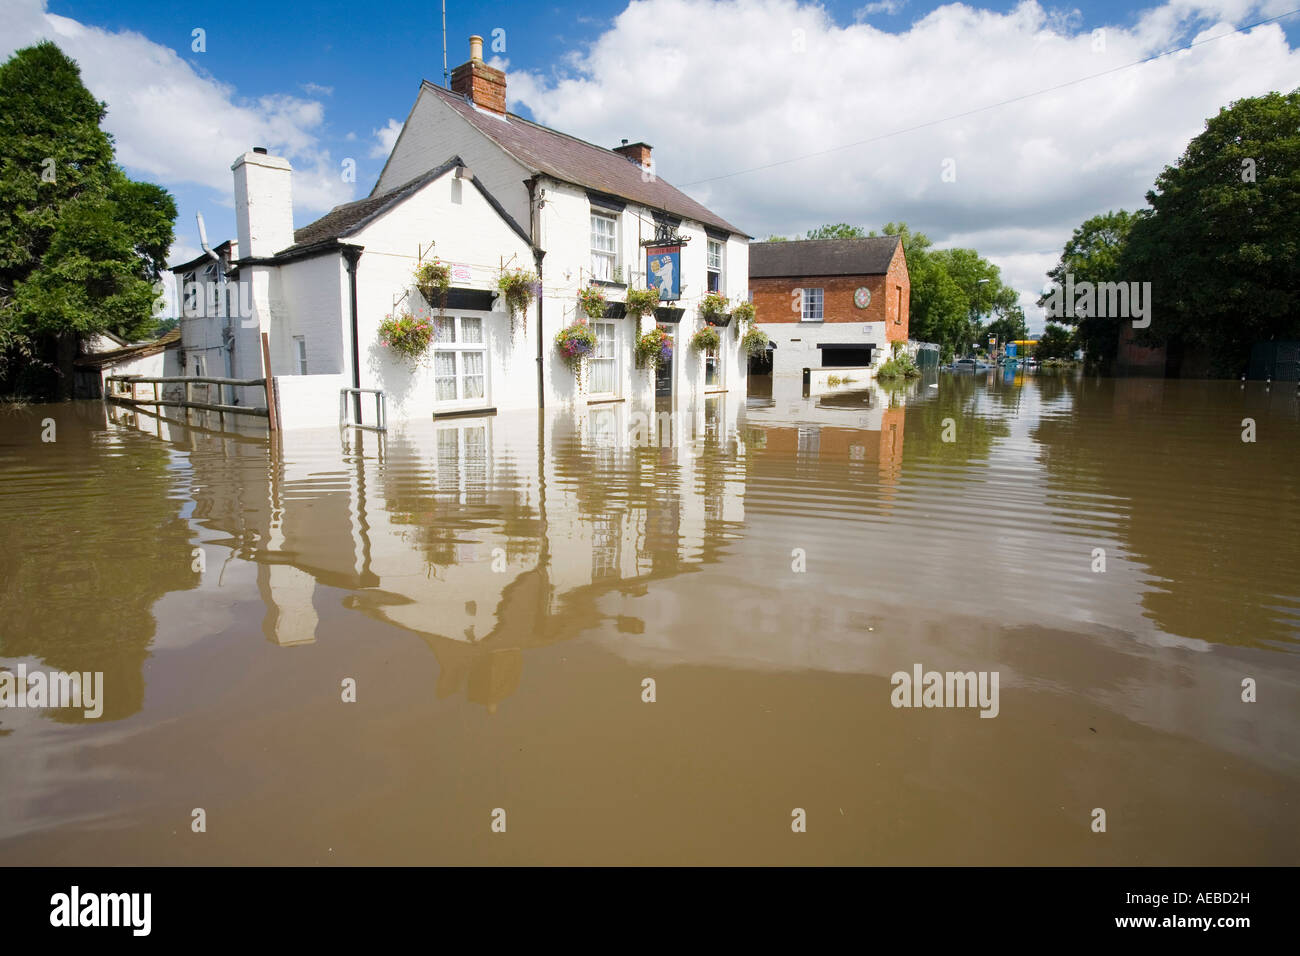 A pub flooded in Tewkesbury - Stock Image